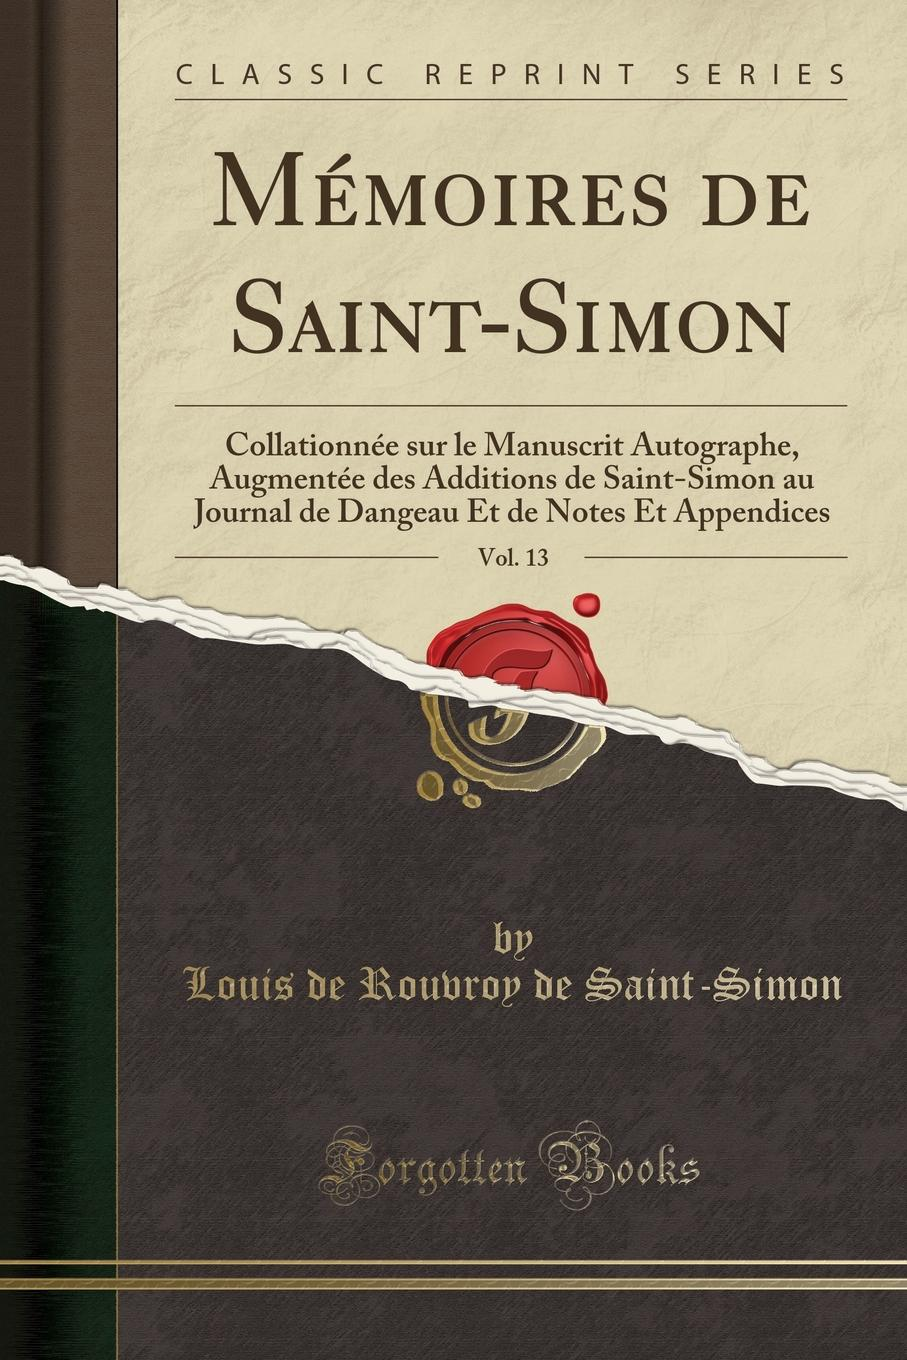 Louis de Rouvroy de Saint-Simon Memoires de Saint-Simon, Vol. 13. Collationnee sur le Manuscrit Autographe, Augmentee des Additions de Saint-Simon au Journal de Dangeau Et de Notes Et Appendices (Classic Reprint) дефлекторы на окна voron glass corsar volkswagen passat cc ii 2012 н в комплект 4шт def00648